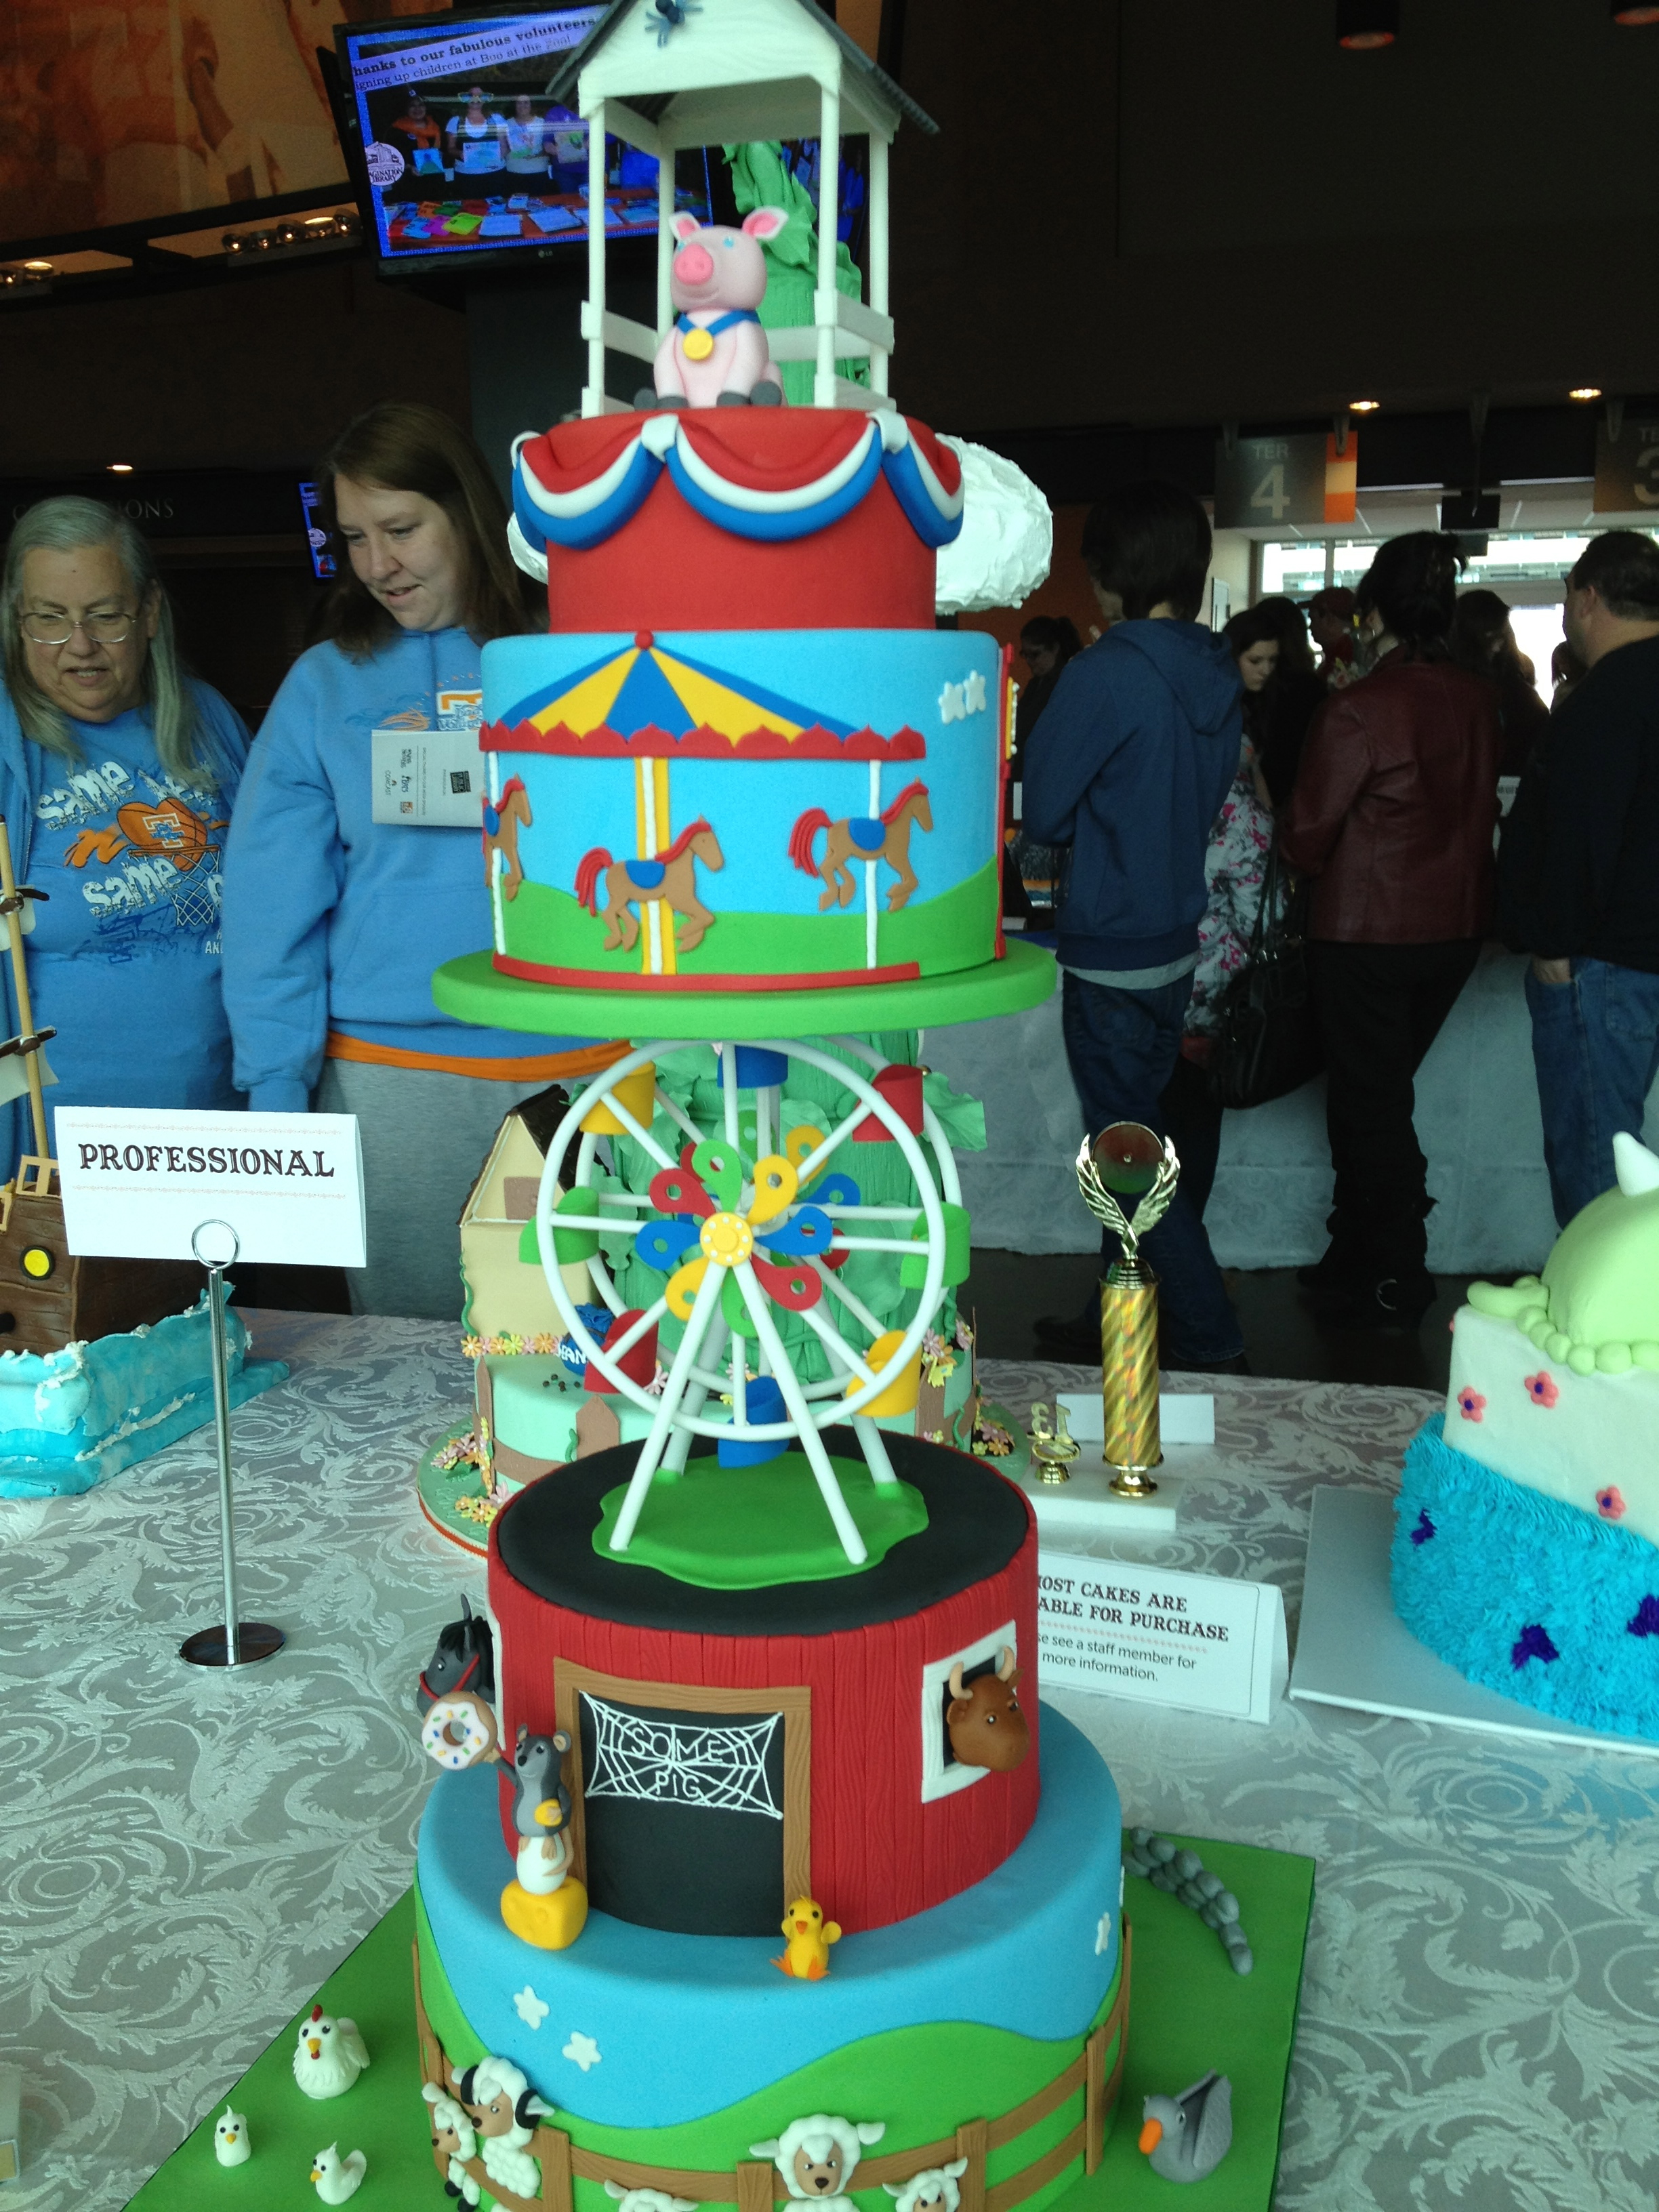 Books And Buttercream At The Great Cake Bake Oh The Places We See